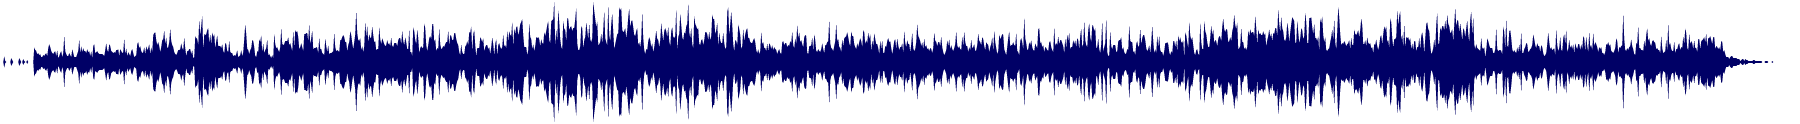 waveform of track #77366